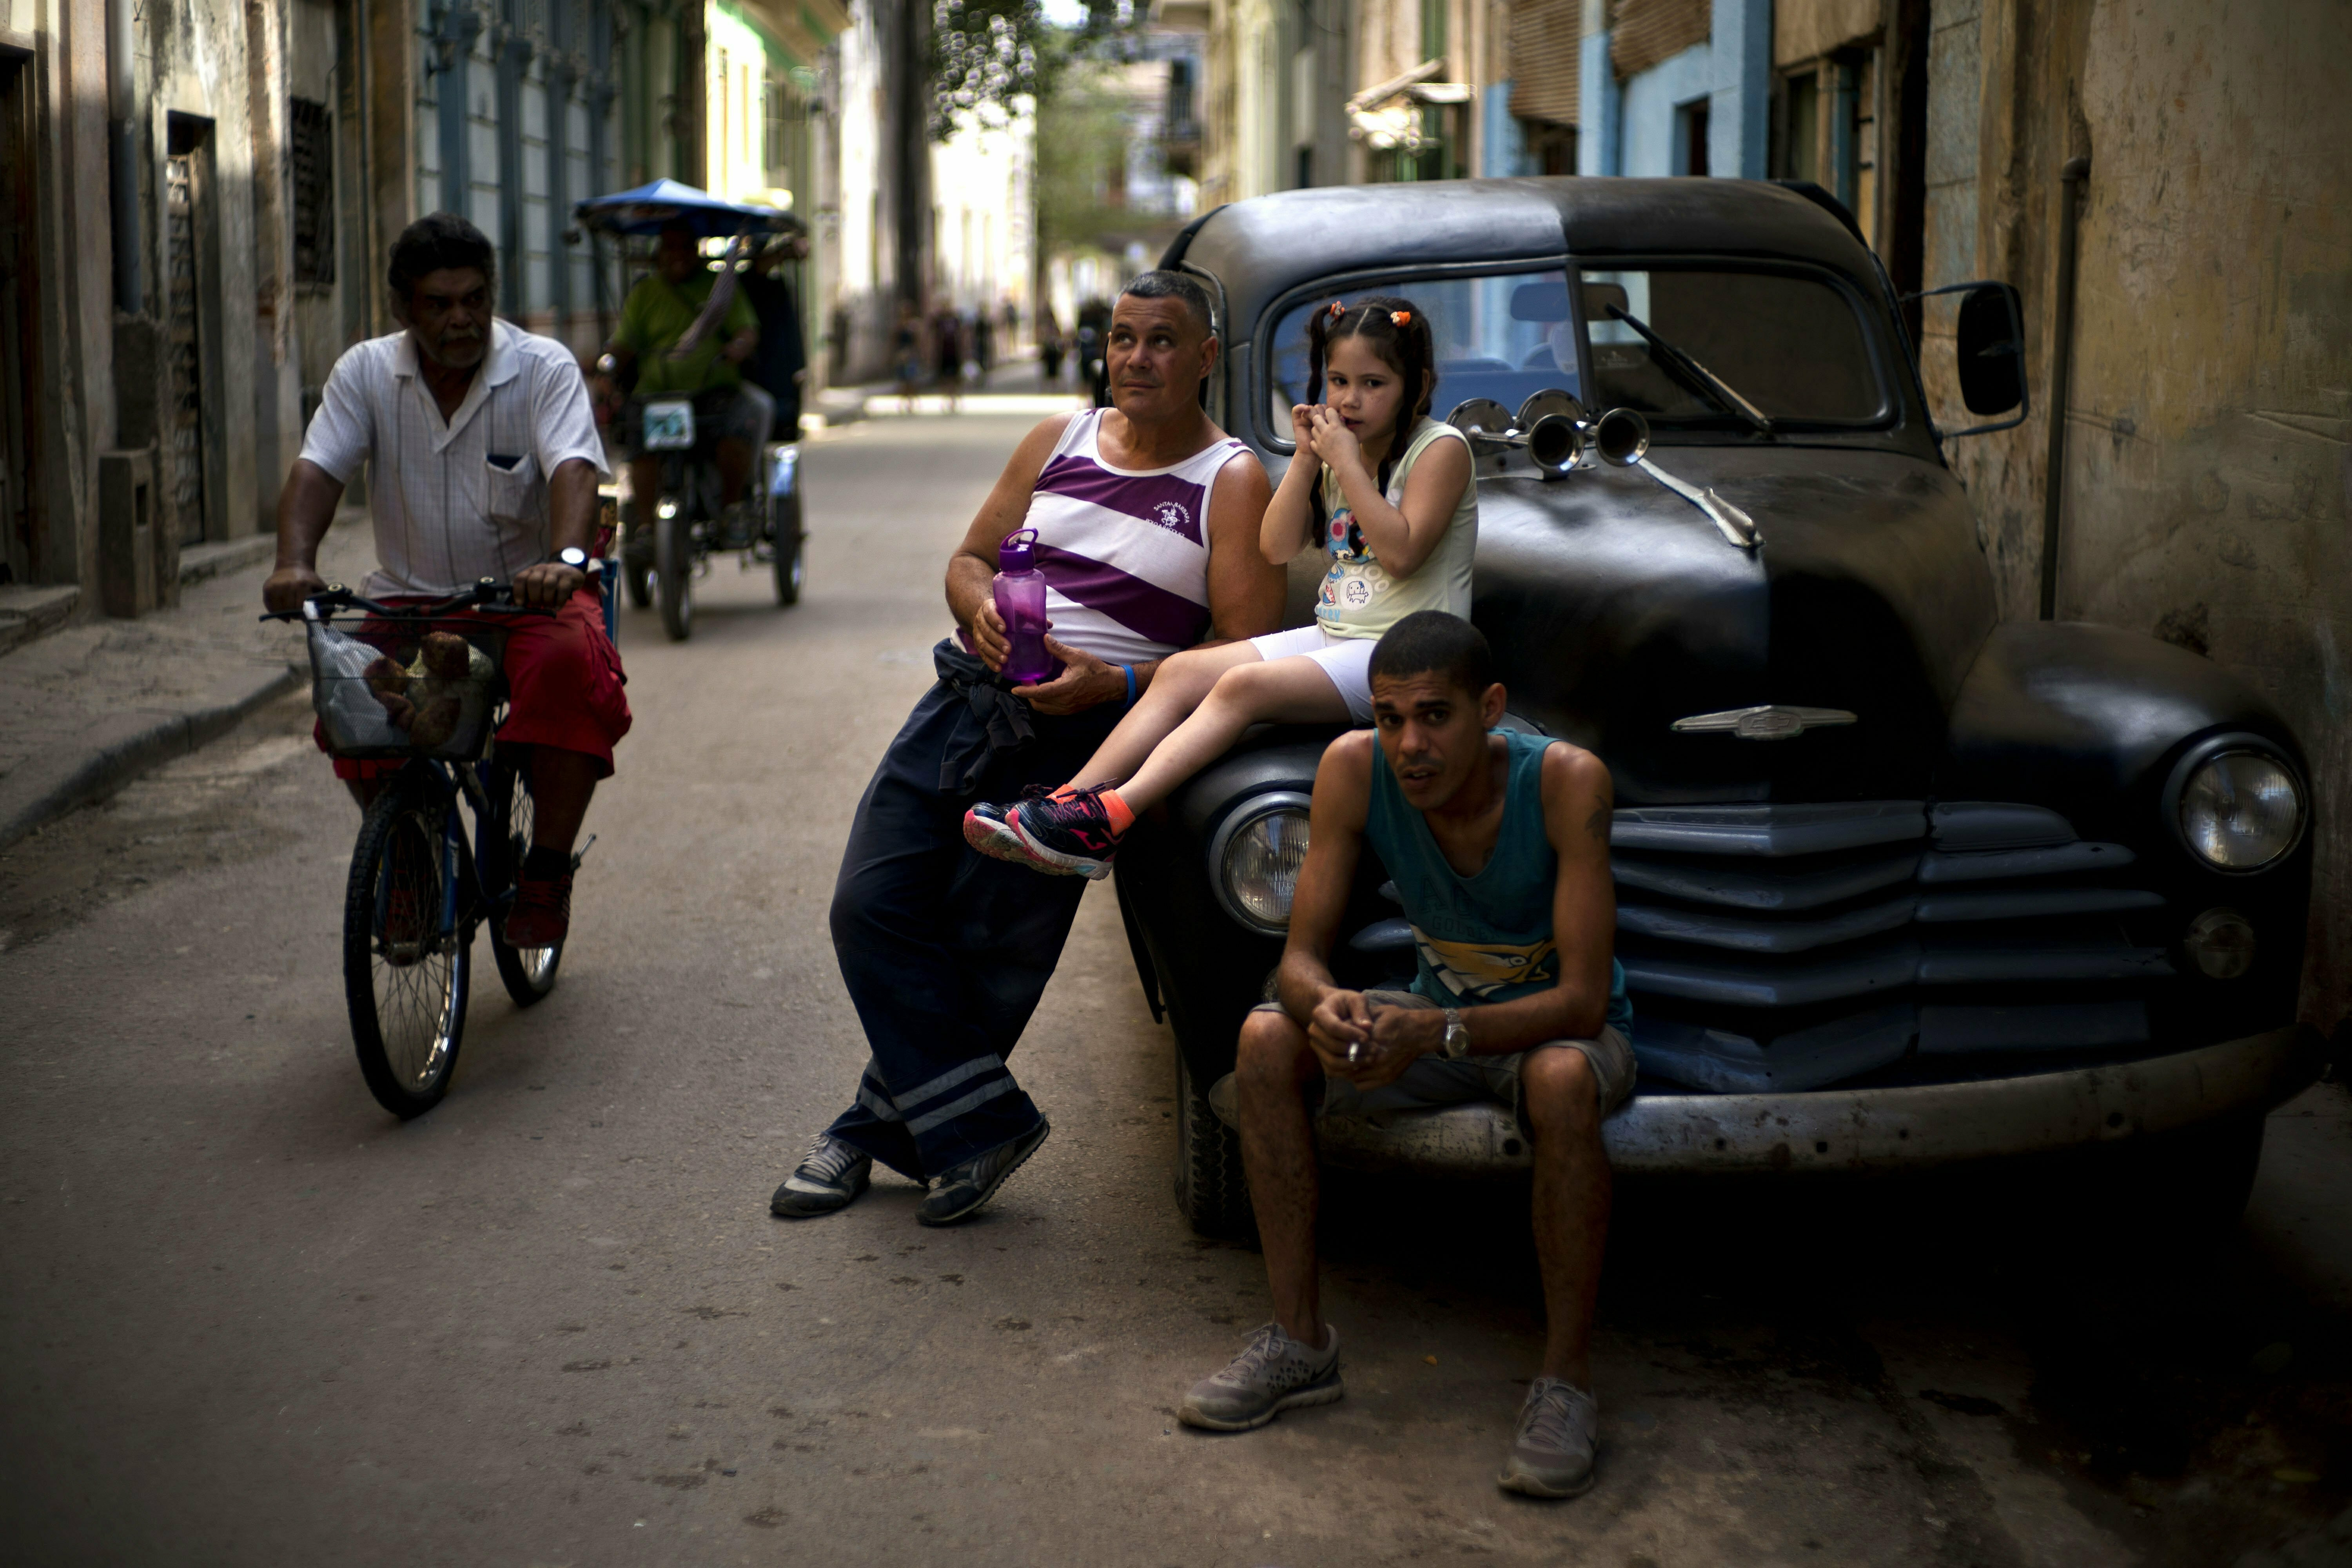 People rest on a classic American car as a man pedals his bike past in Havana, Cuba, Wednesday, April 10, 2019. Communist Party leader Raúl Castro warned Cubans on Wednesday that they should brace for worsening shortages due to Trump administration policies, but said the island won't return to the extreme deprivation of the post-Soviet period. (AP Photo/Ramon Espinosa)